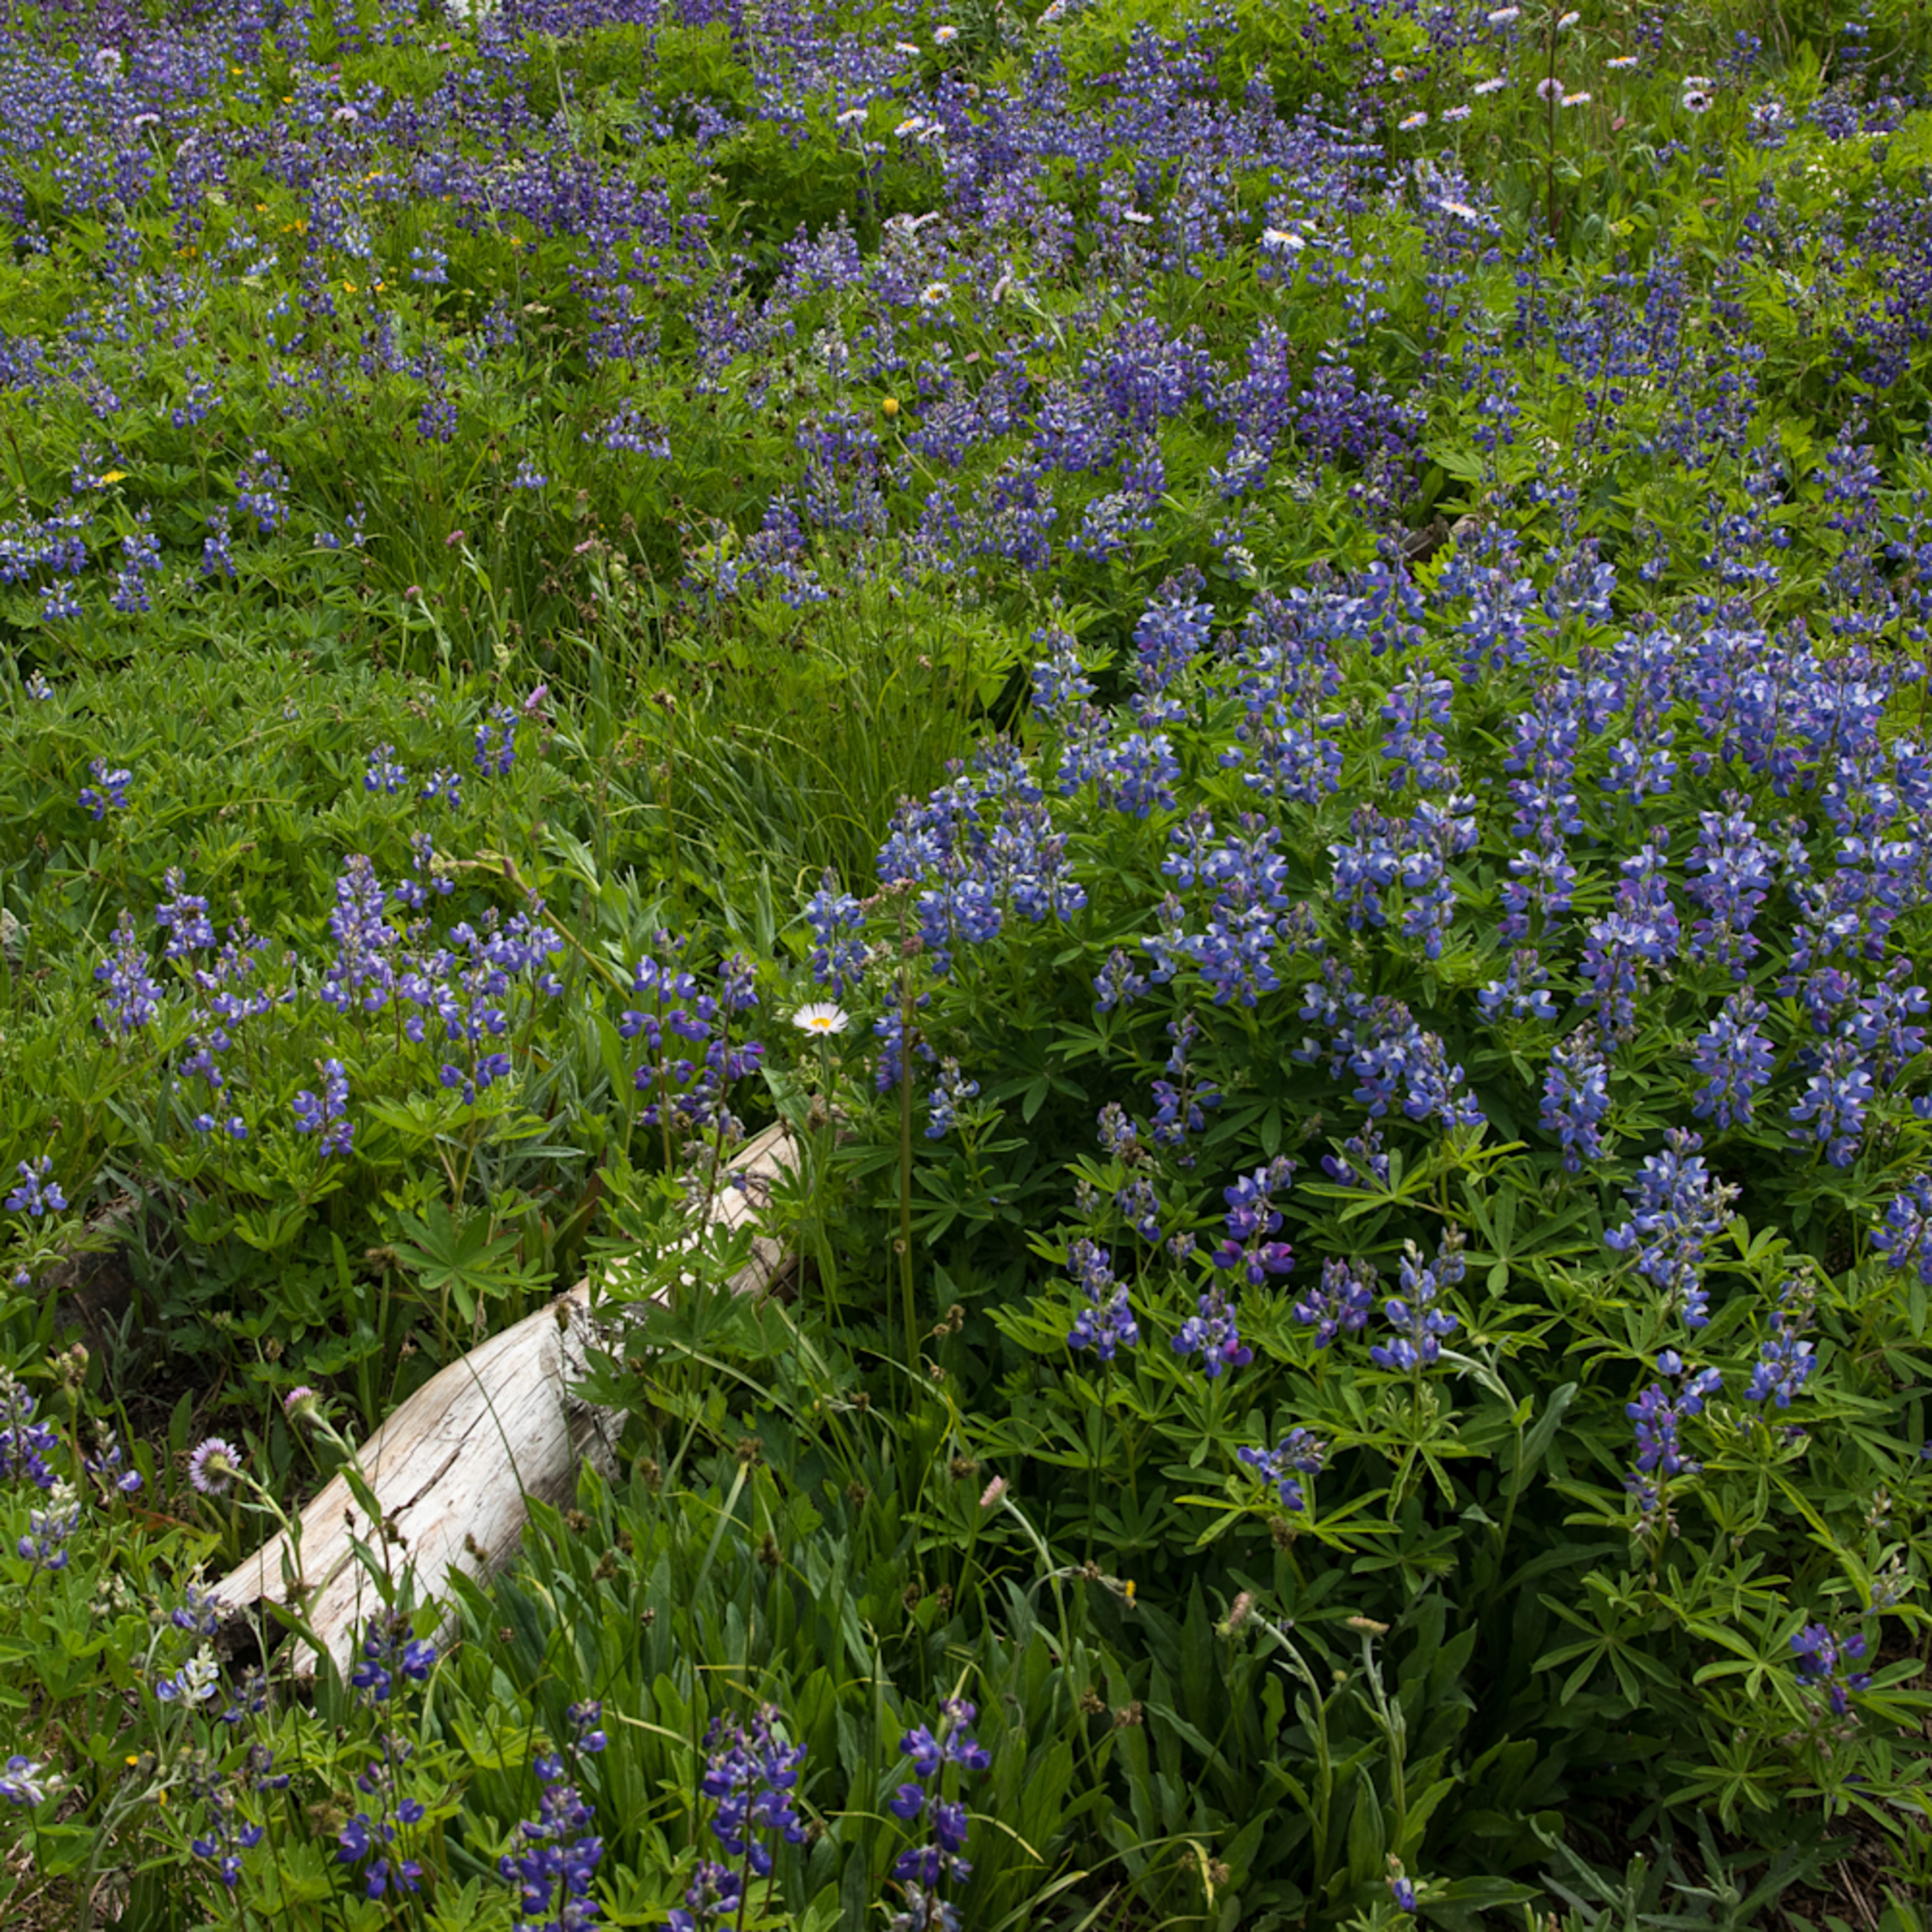 Field of flowers with log vnh2ym